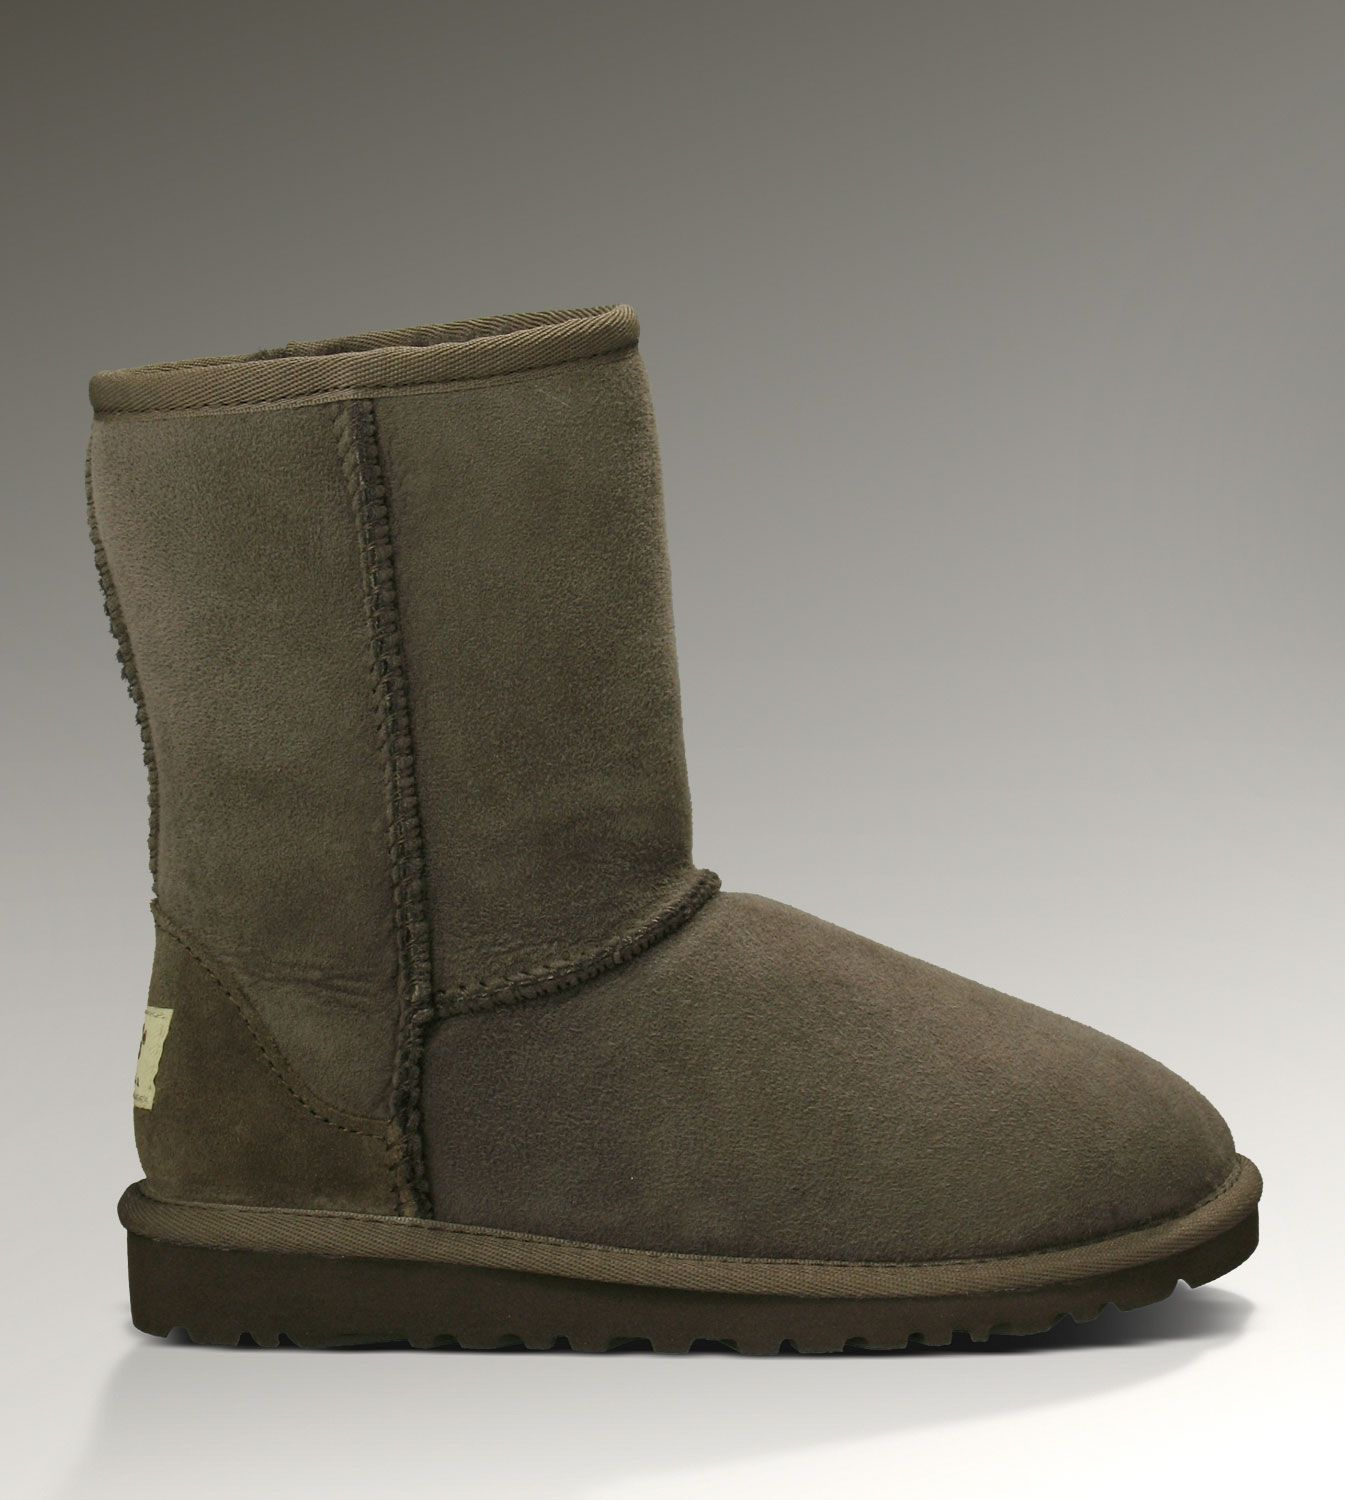 UGG Short Classic 5251 Chocolate Boots